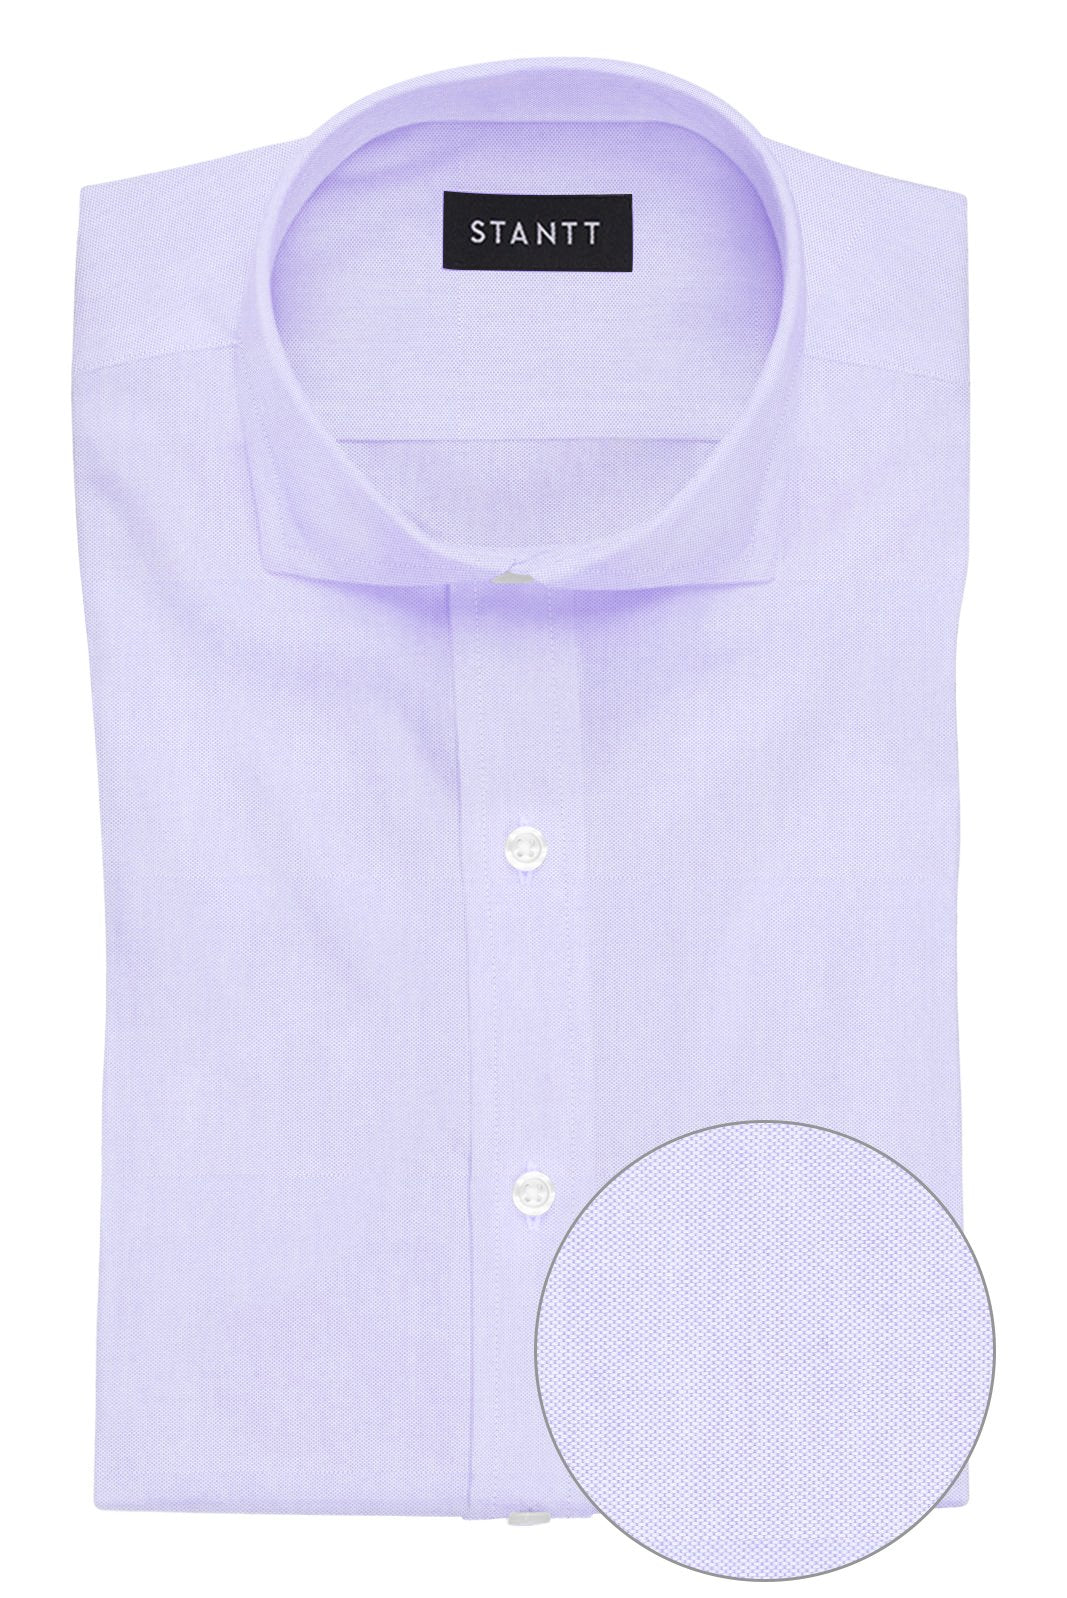 Lavender Pinpoint Oxford: Cutaway Collar, French Cuff